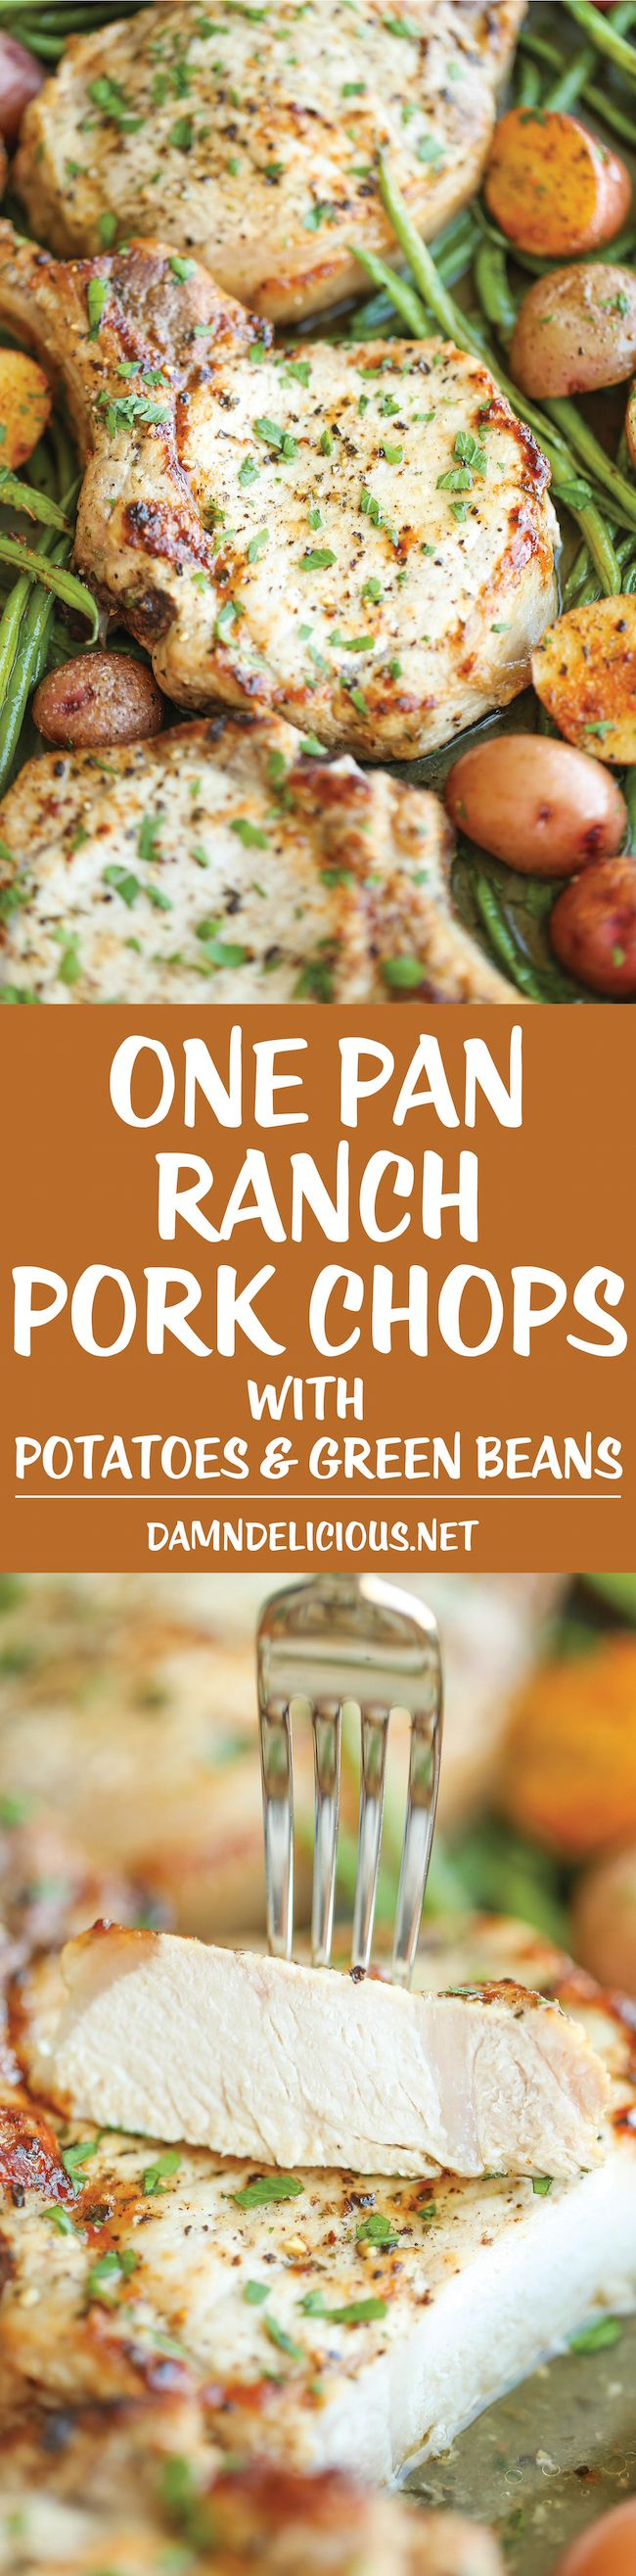 One Pan Ranch Pork Chops and Veggies - The easiest 5-ingredient meal EVER! And yes, you just need one pan with 5 min prep. It's quick, easy and effortless!